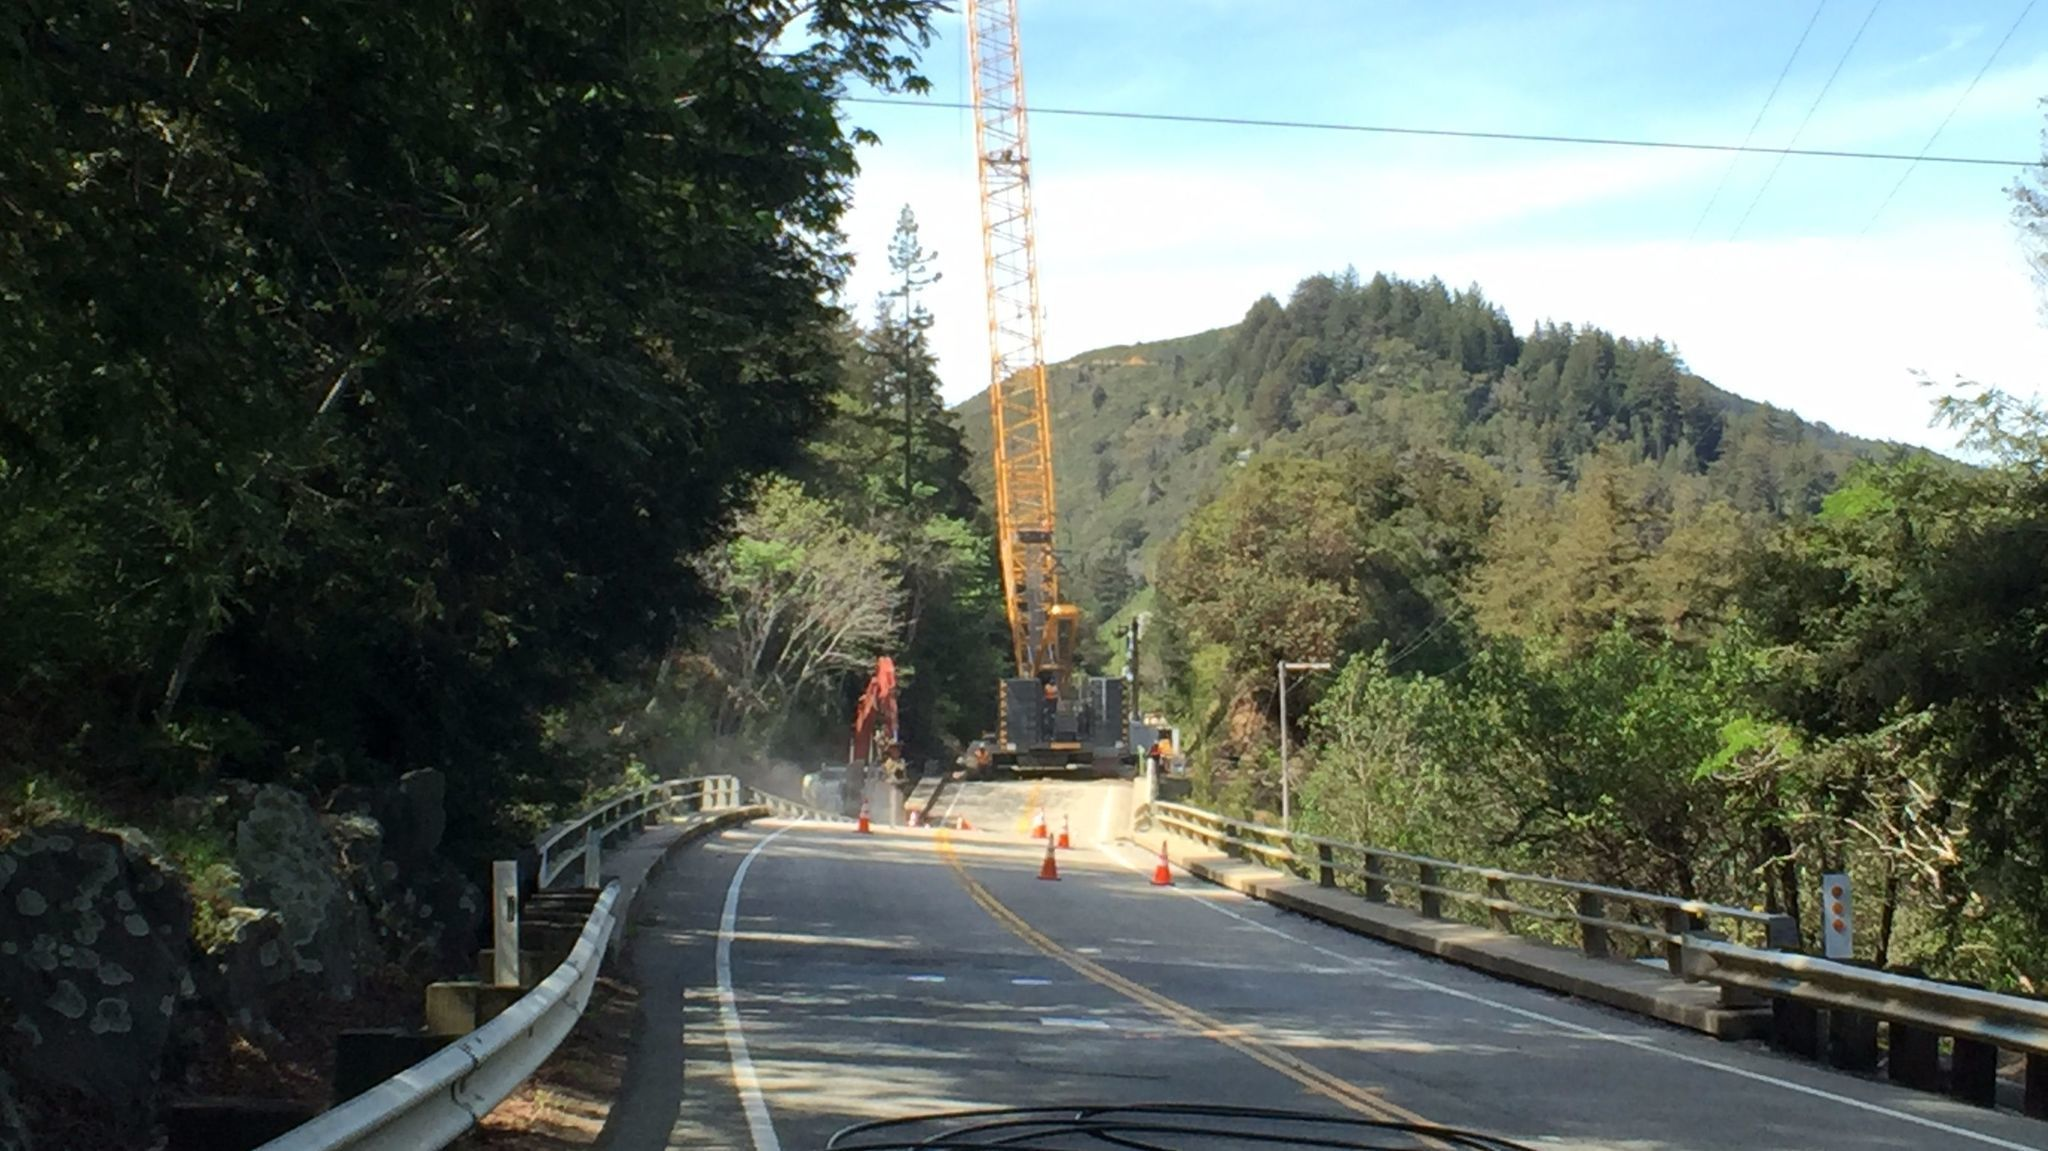 On Highway 1 in Big Sur, the Pfeiffer Canyon Bridge has buckled. (Robin Abcarian / Los Angeles Times)